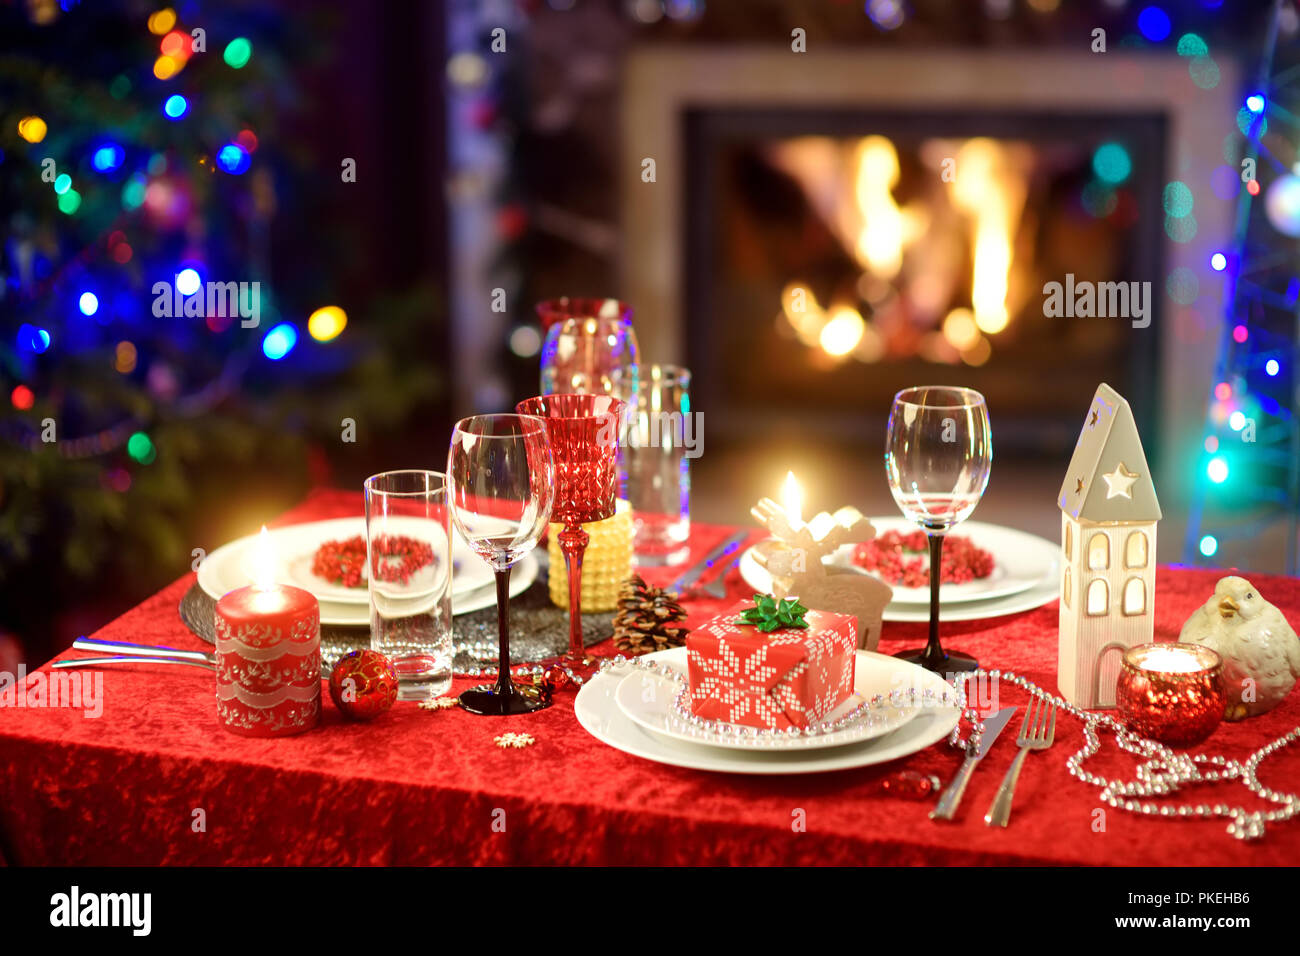 Beautiful table setting for Christmas party or New Year celebration at home. Cozy room with a fireplace and Christmas tree in a background. Xmas time  Stock Photo